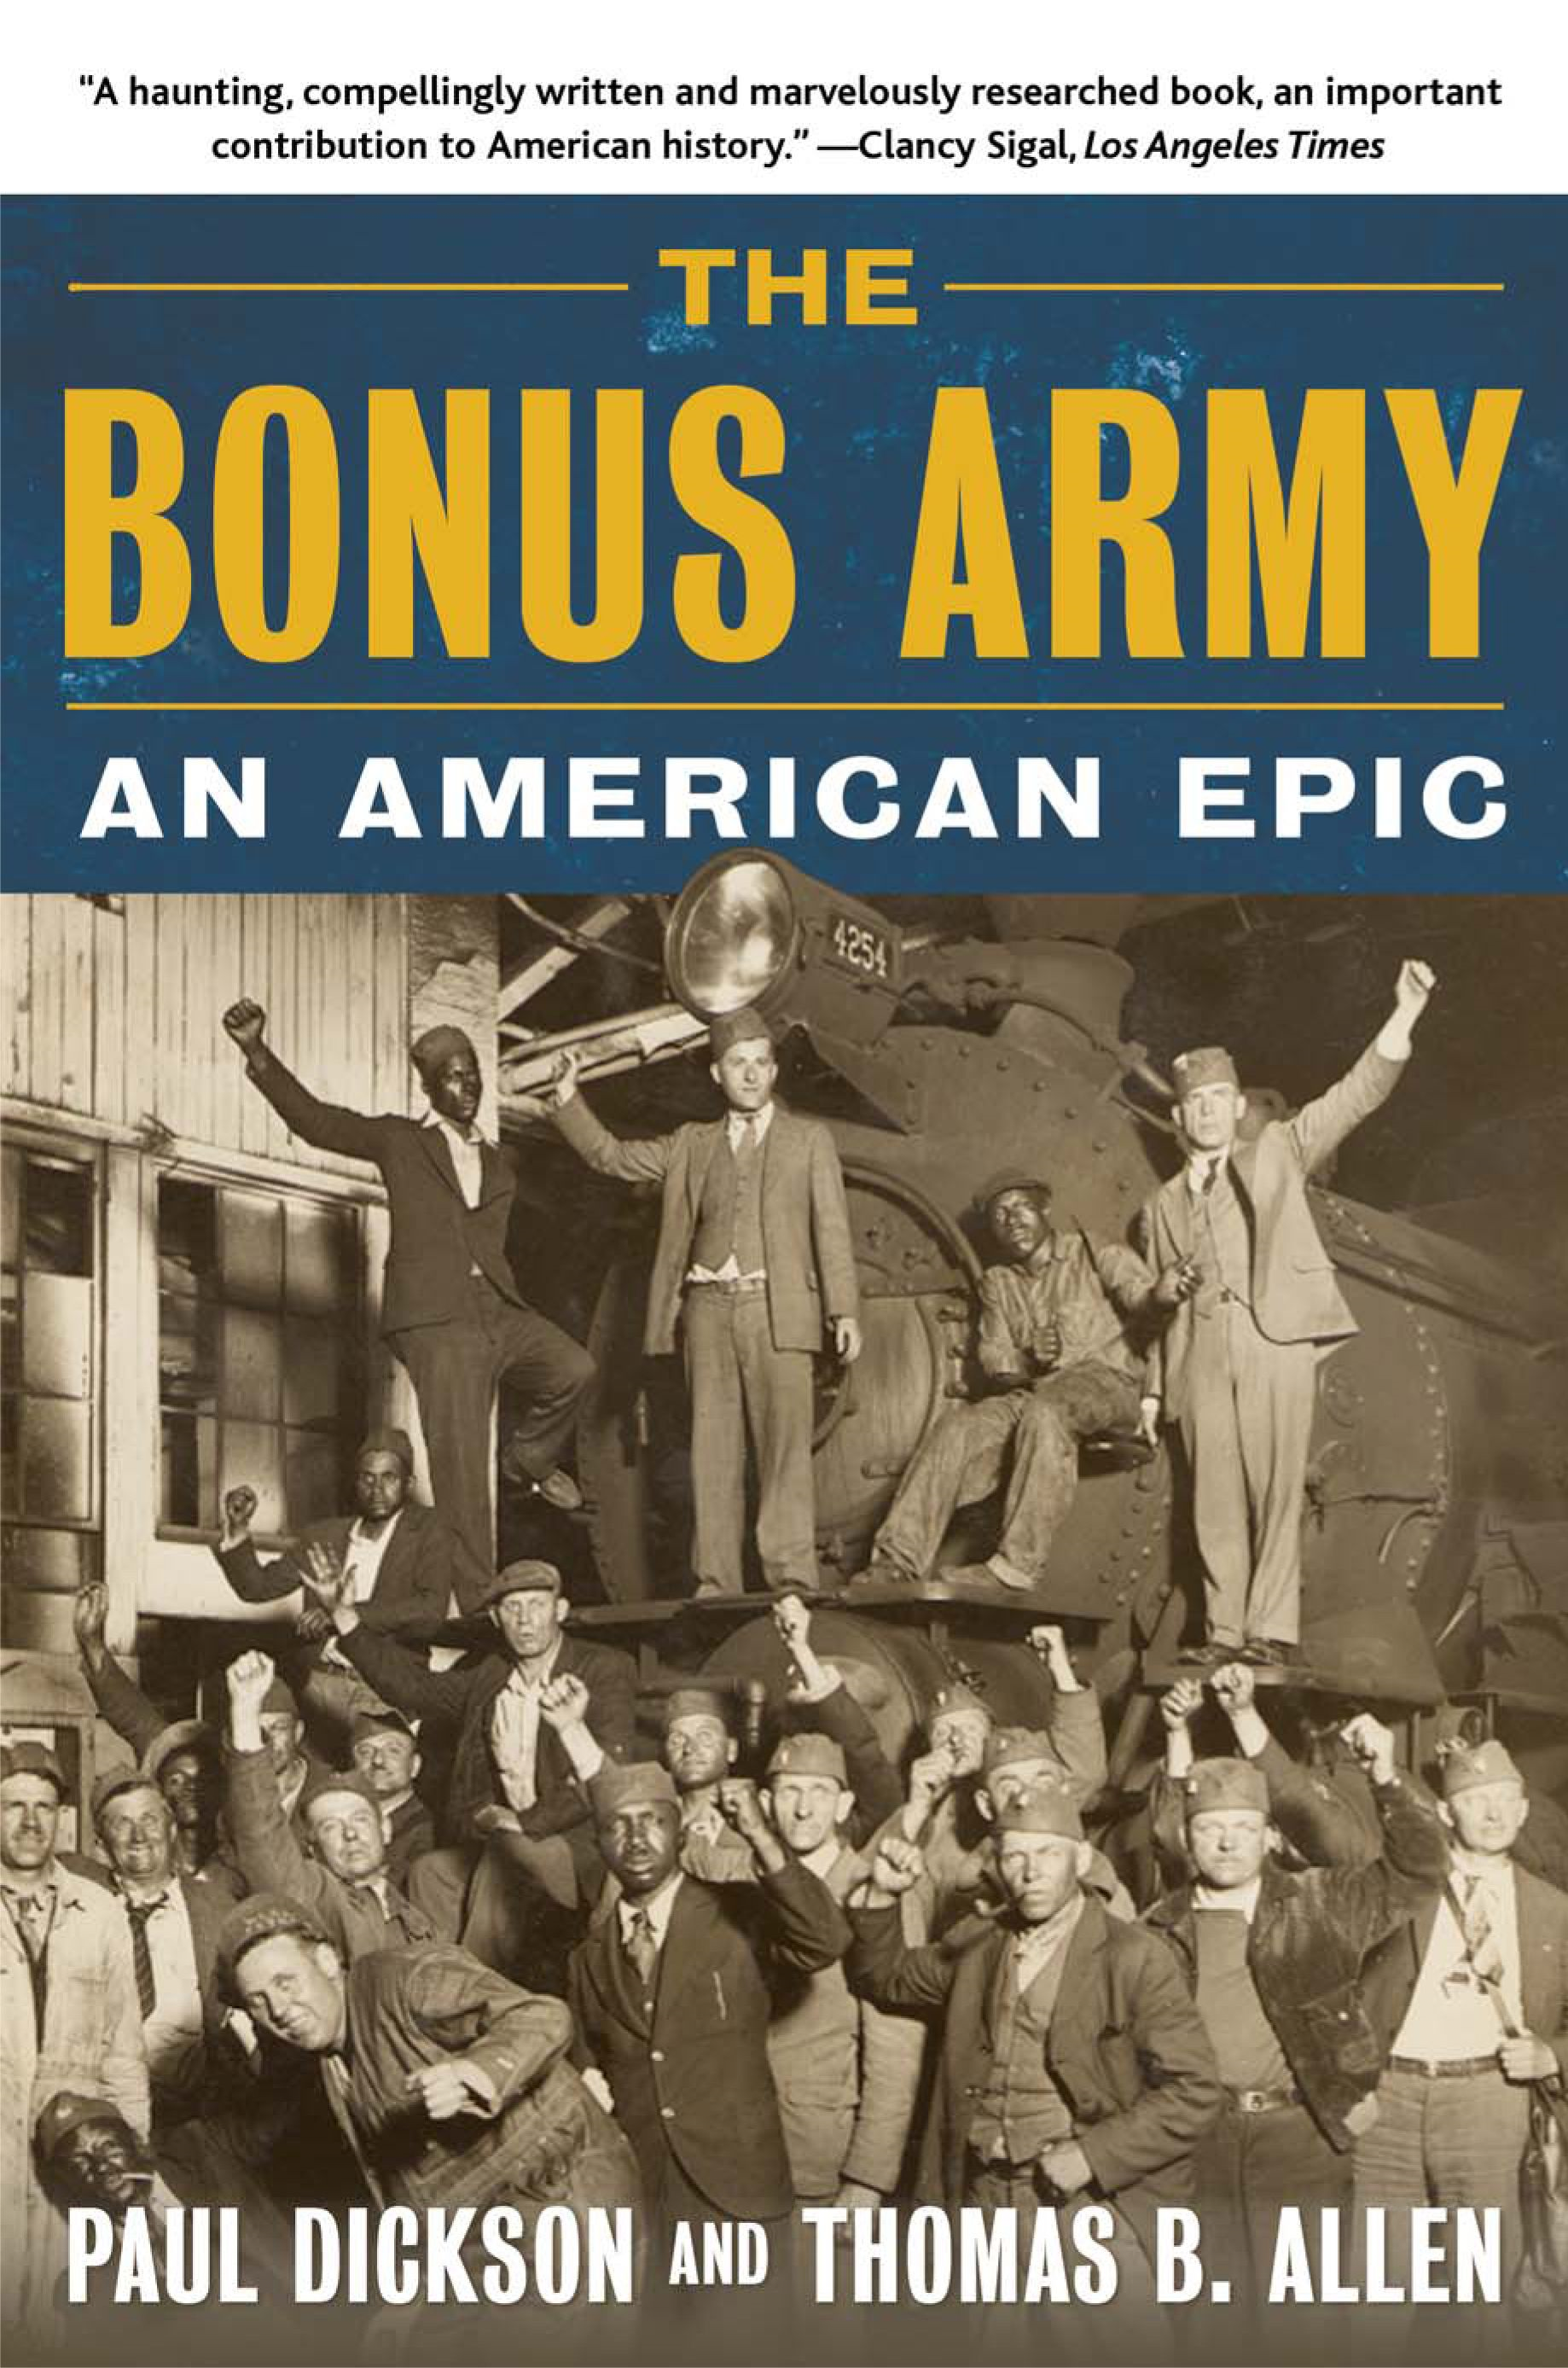 The Bonus Army: An American Epic